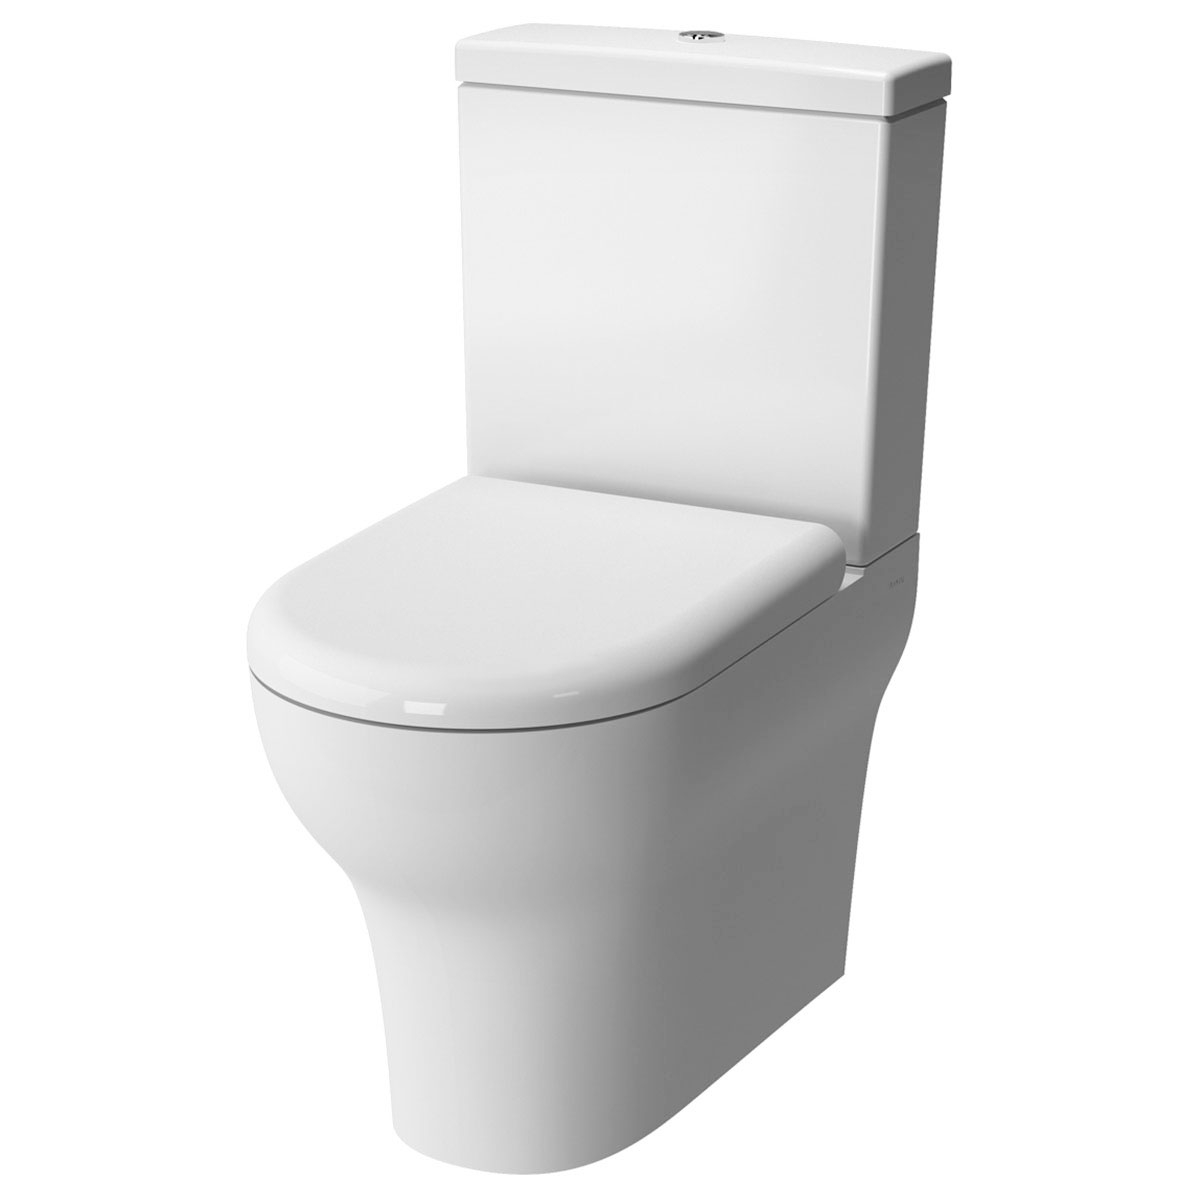 VitrA Zentrum Value Suite Close Coupled Toilet 1 Tap Hole Basin-1